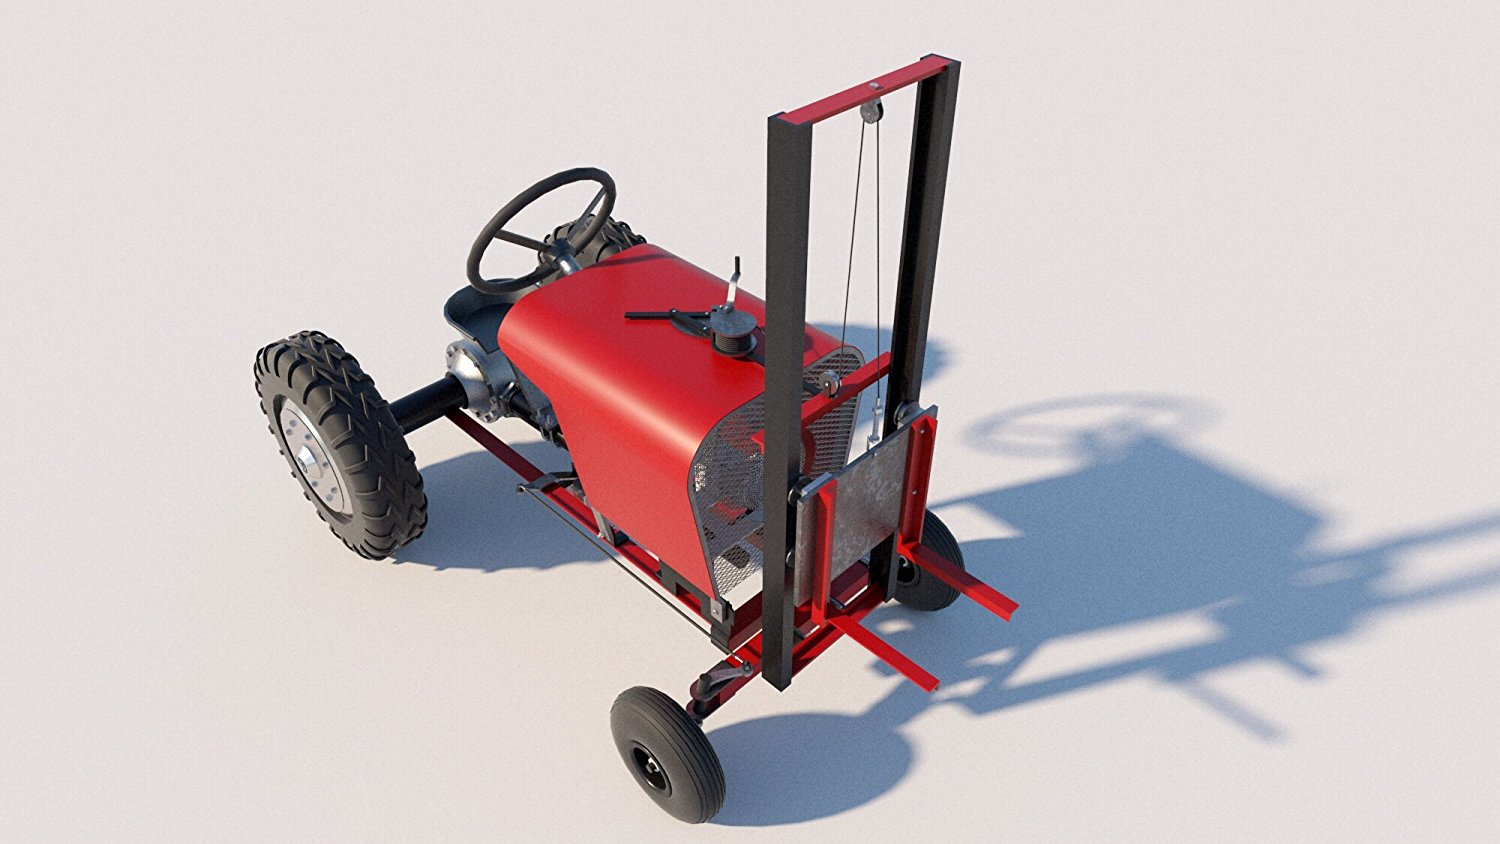 Get Quotations · DIY Plans Build your own Fork Lift Attachment for a Garden Tractor Fun to build!